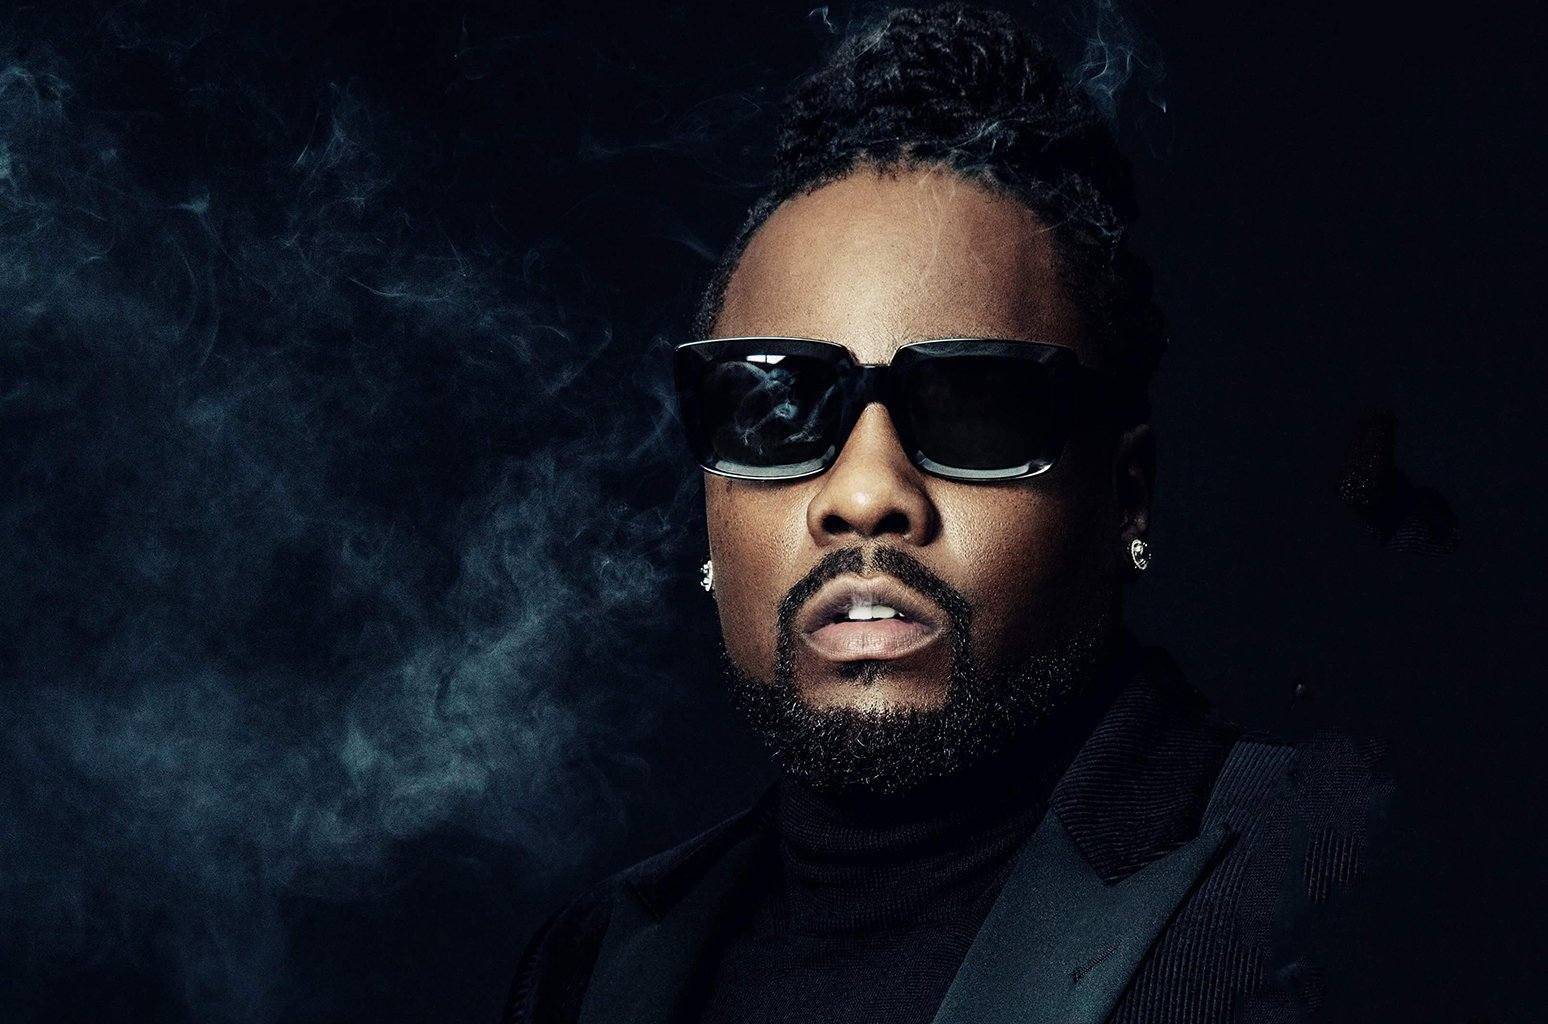 Wale Essentials https://t.co/yneRkBMsD1 #TIDAL 40 Folarin joints. While we wait... #SelfPromotion https://t.co/9zIghZnk3D